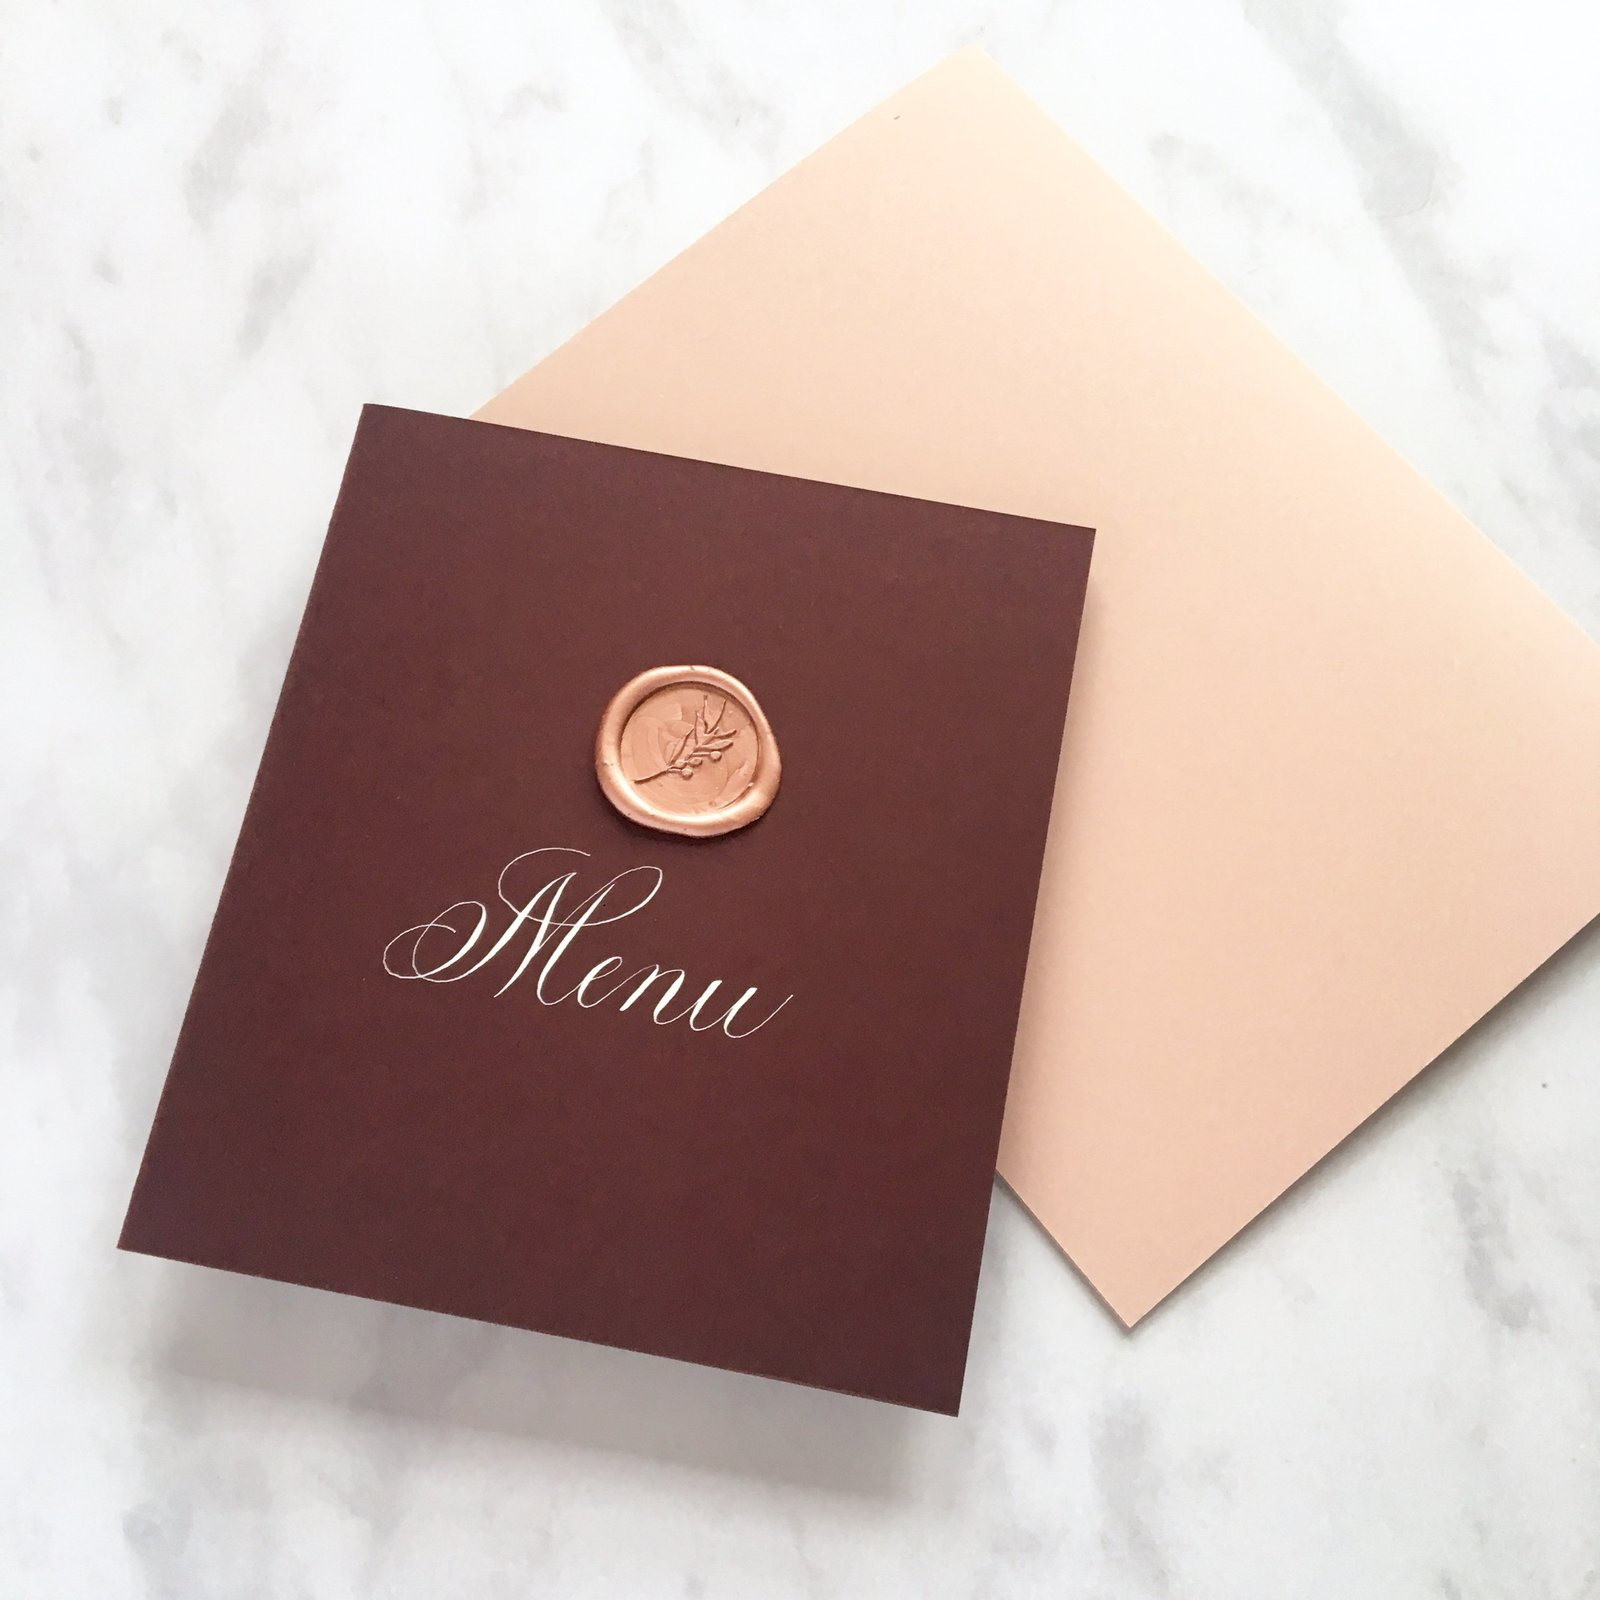 Menu booklets with white calligraphy and wax seal